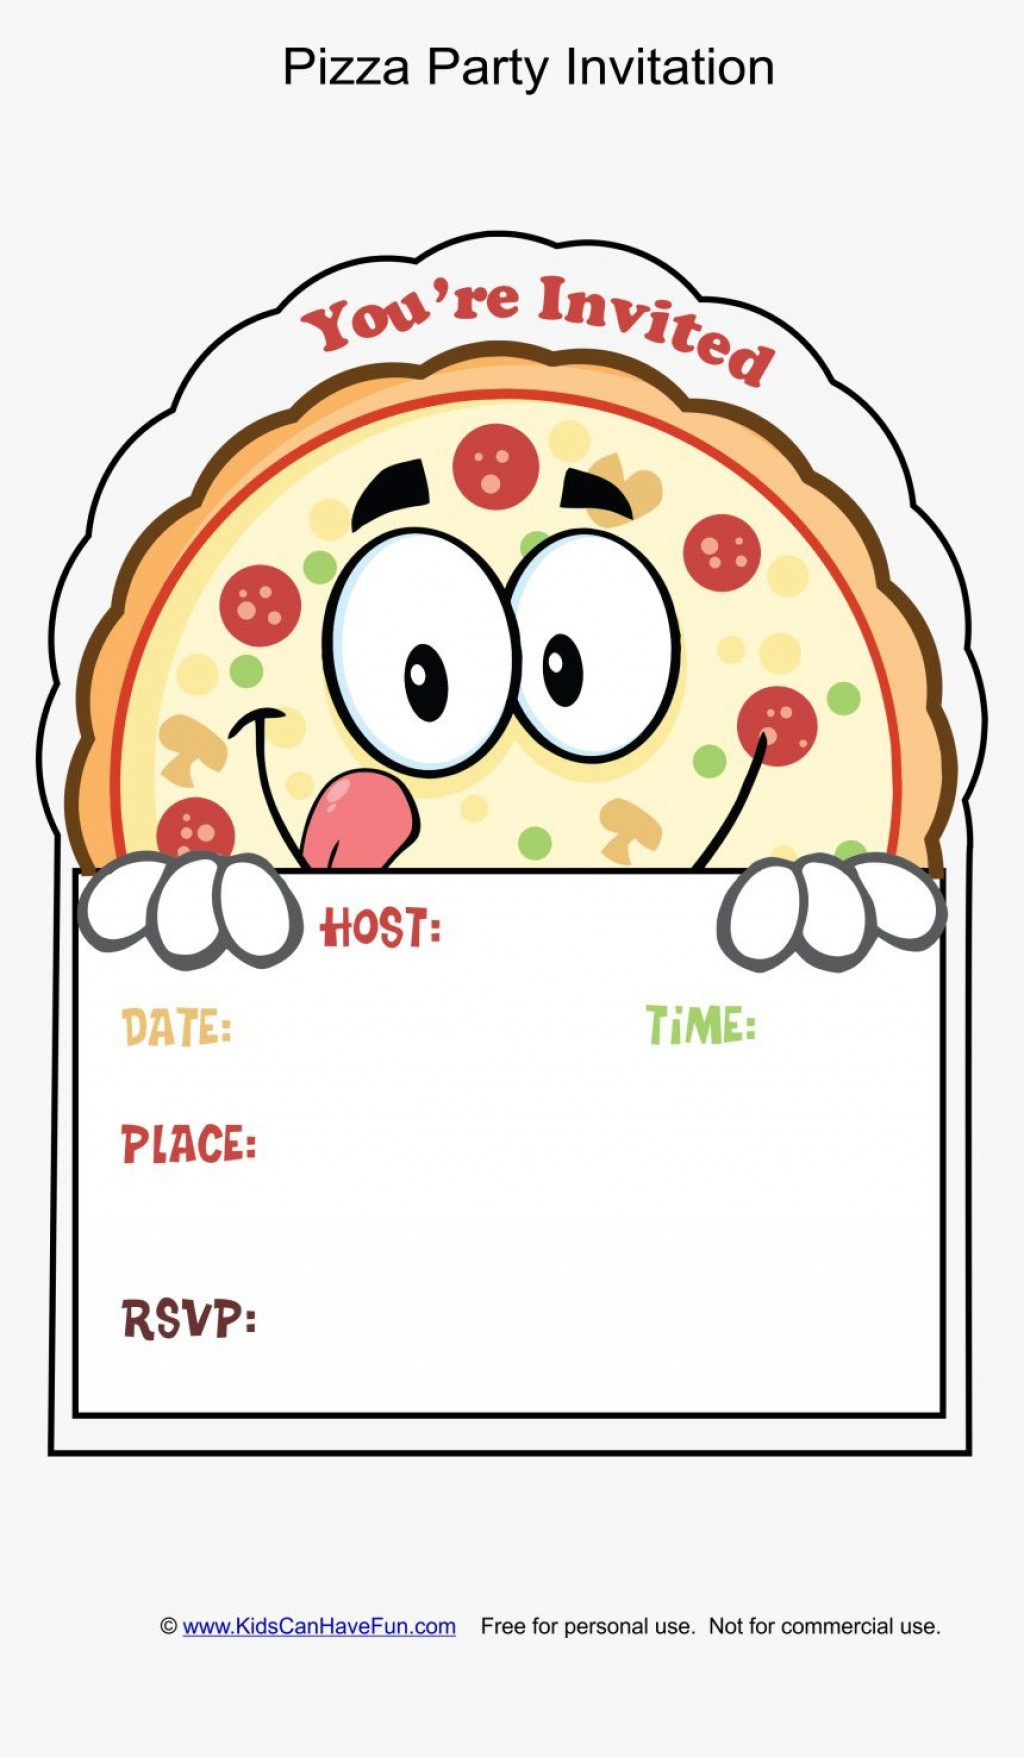 002 Wonderful Pizza Party Invitation Template Free Example  PrintableLarge